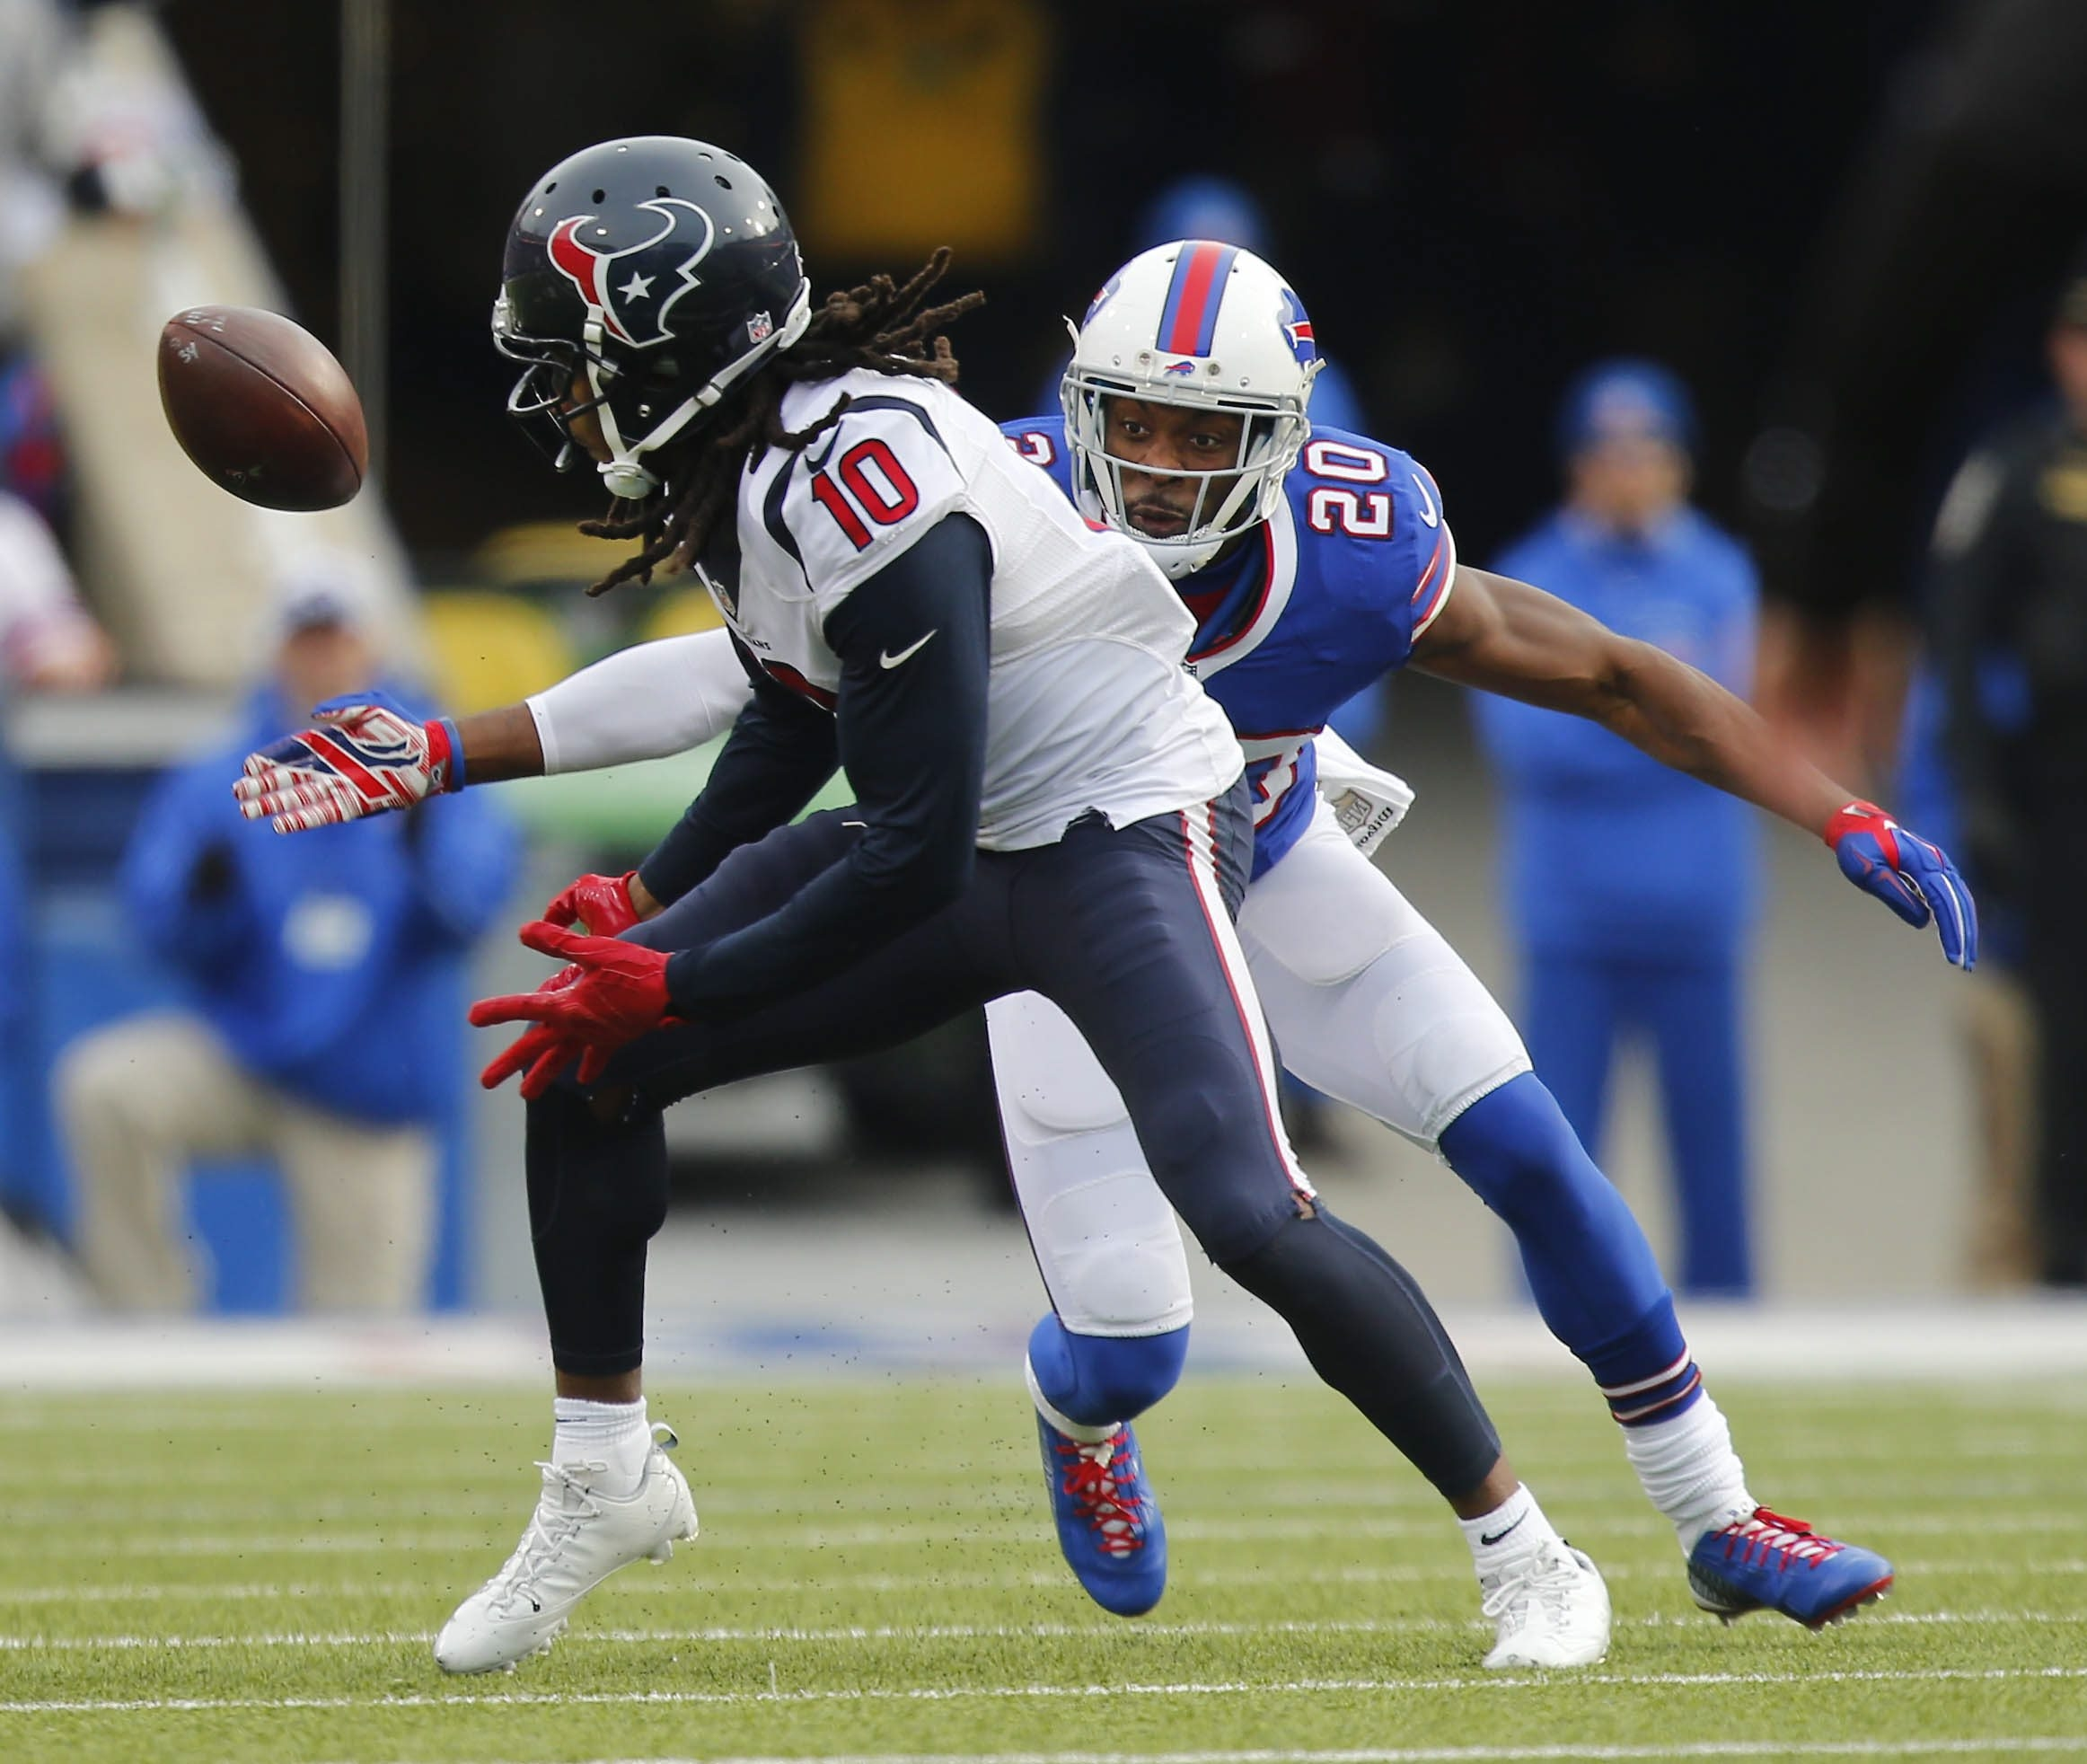 Buffalo Bills' Corey Graham breaks up a pass intended for Houston Texans' DeAndre Hopkins during the second quarter at Ralph Wilson Stadium in Orchard Park, Sunday, Dec. 6, 2015.  (Mark Mulville/Buffalo News)